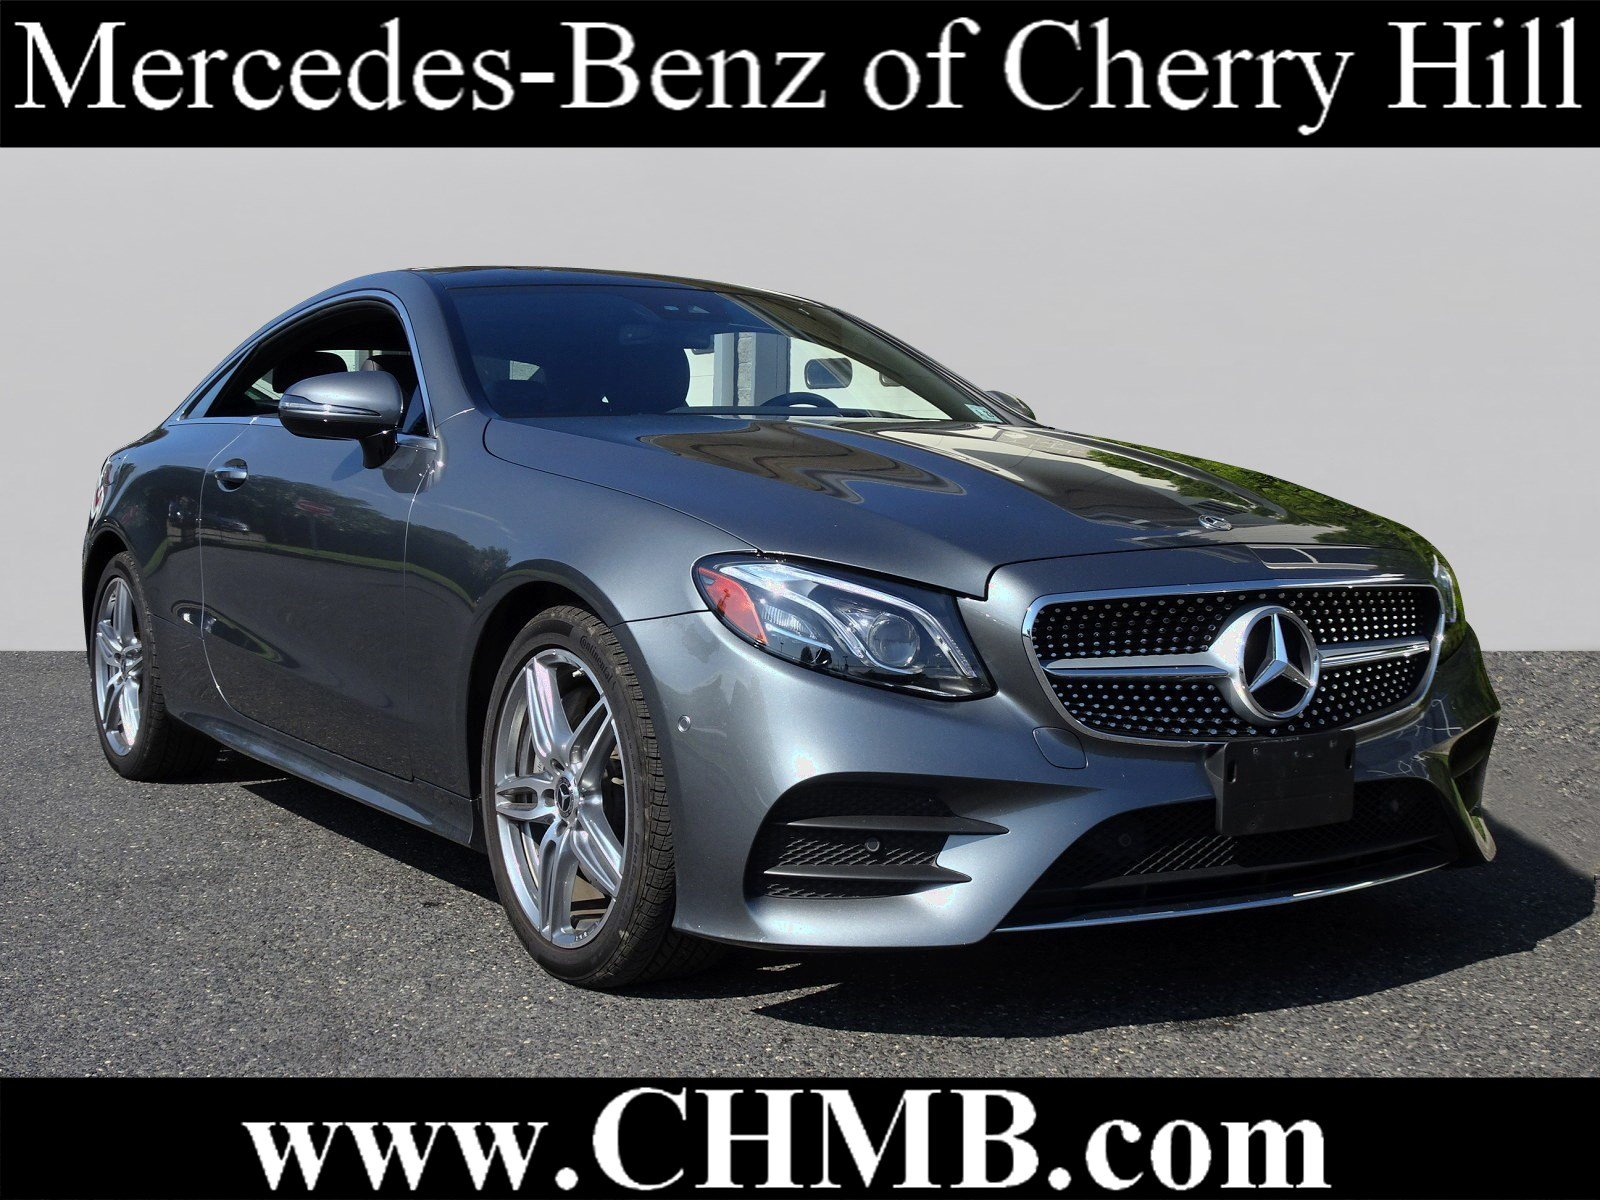 Pre Owned 2018 Mercedes Benz E Class E 400 Sport COUPE in Cherry